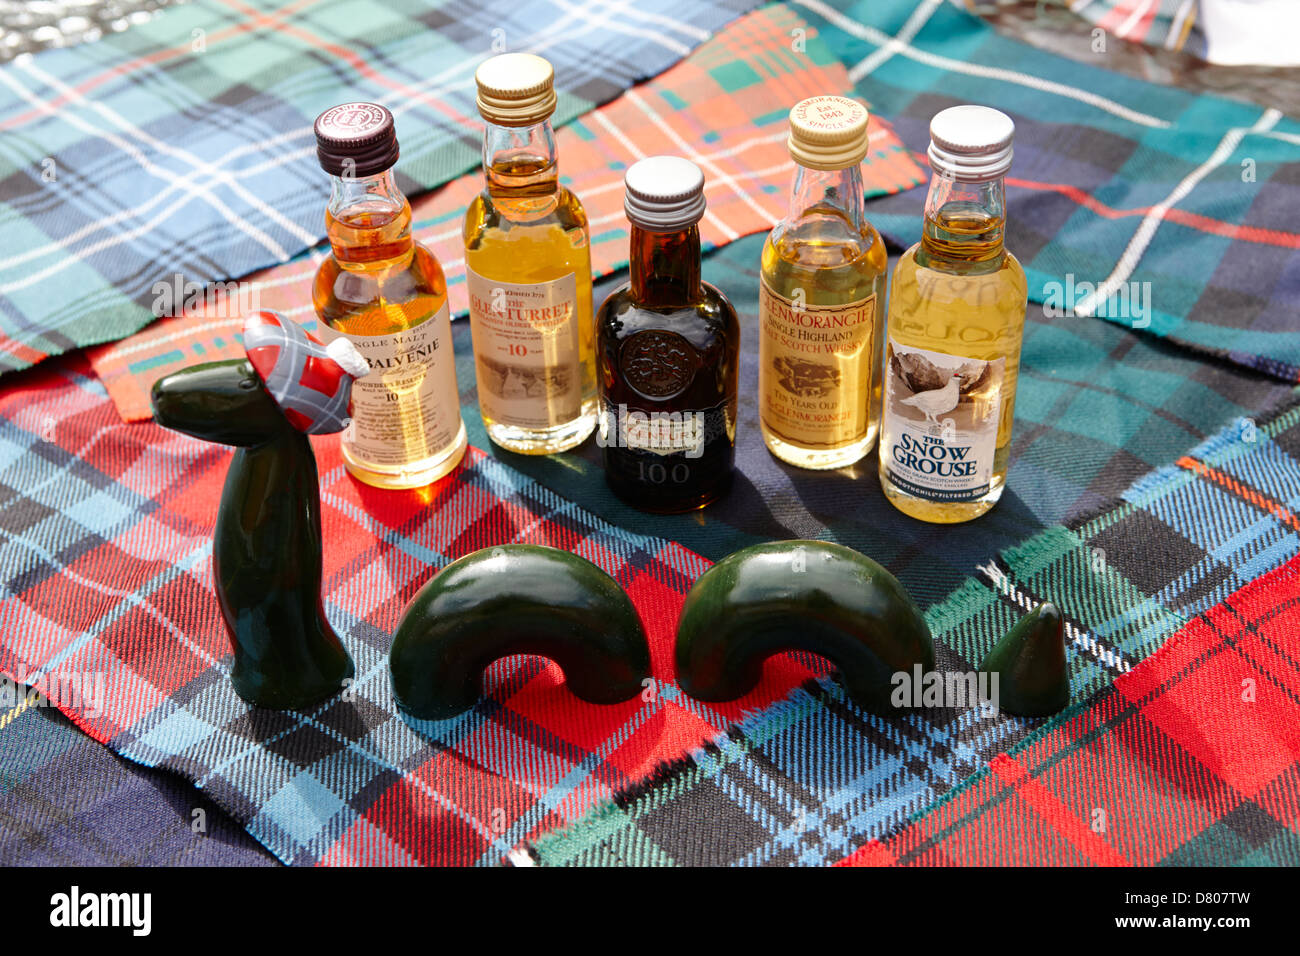 tourist model of the loch ness monster and a range of scotch whiskies on traditional scottish clan tartans - Stock Image